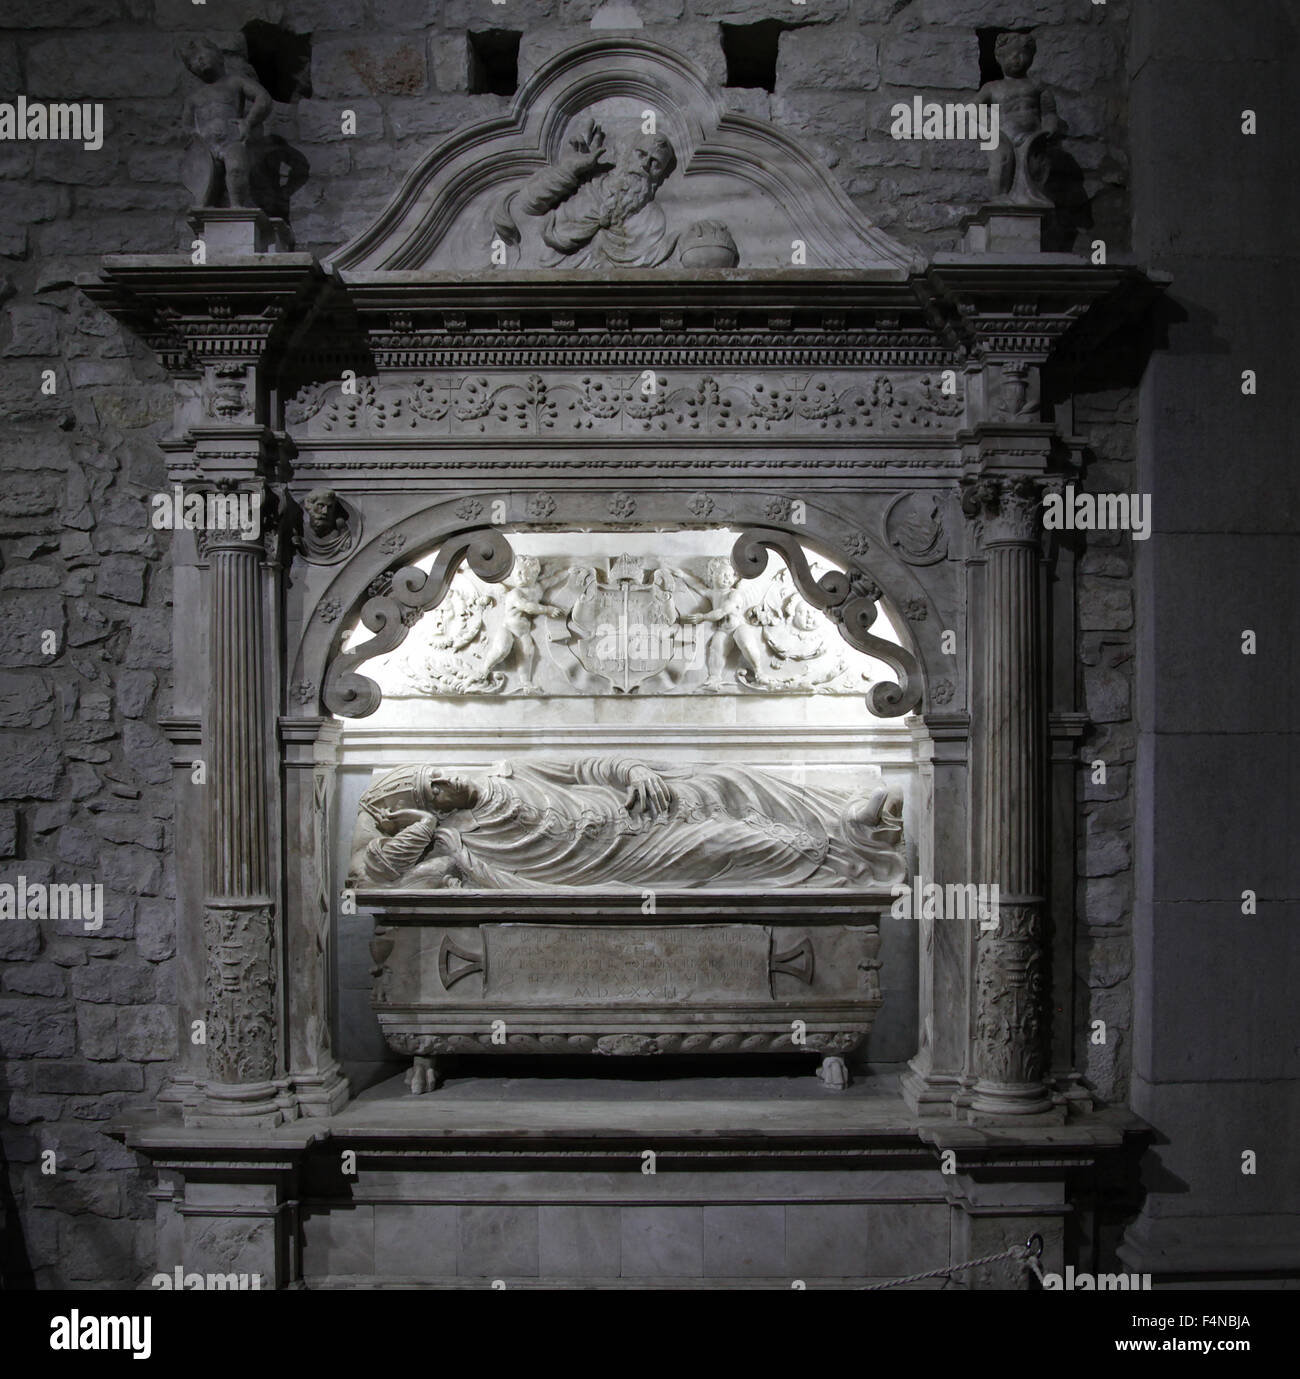 Tomb of Bishop Guillem Boil 1508-1532 Chapel of Hope at The Cathedral of Saint Mary of Girona Spain - Stock Image